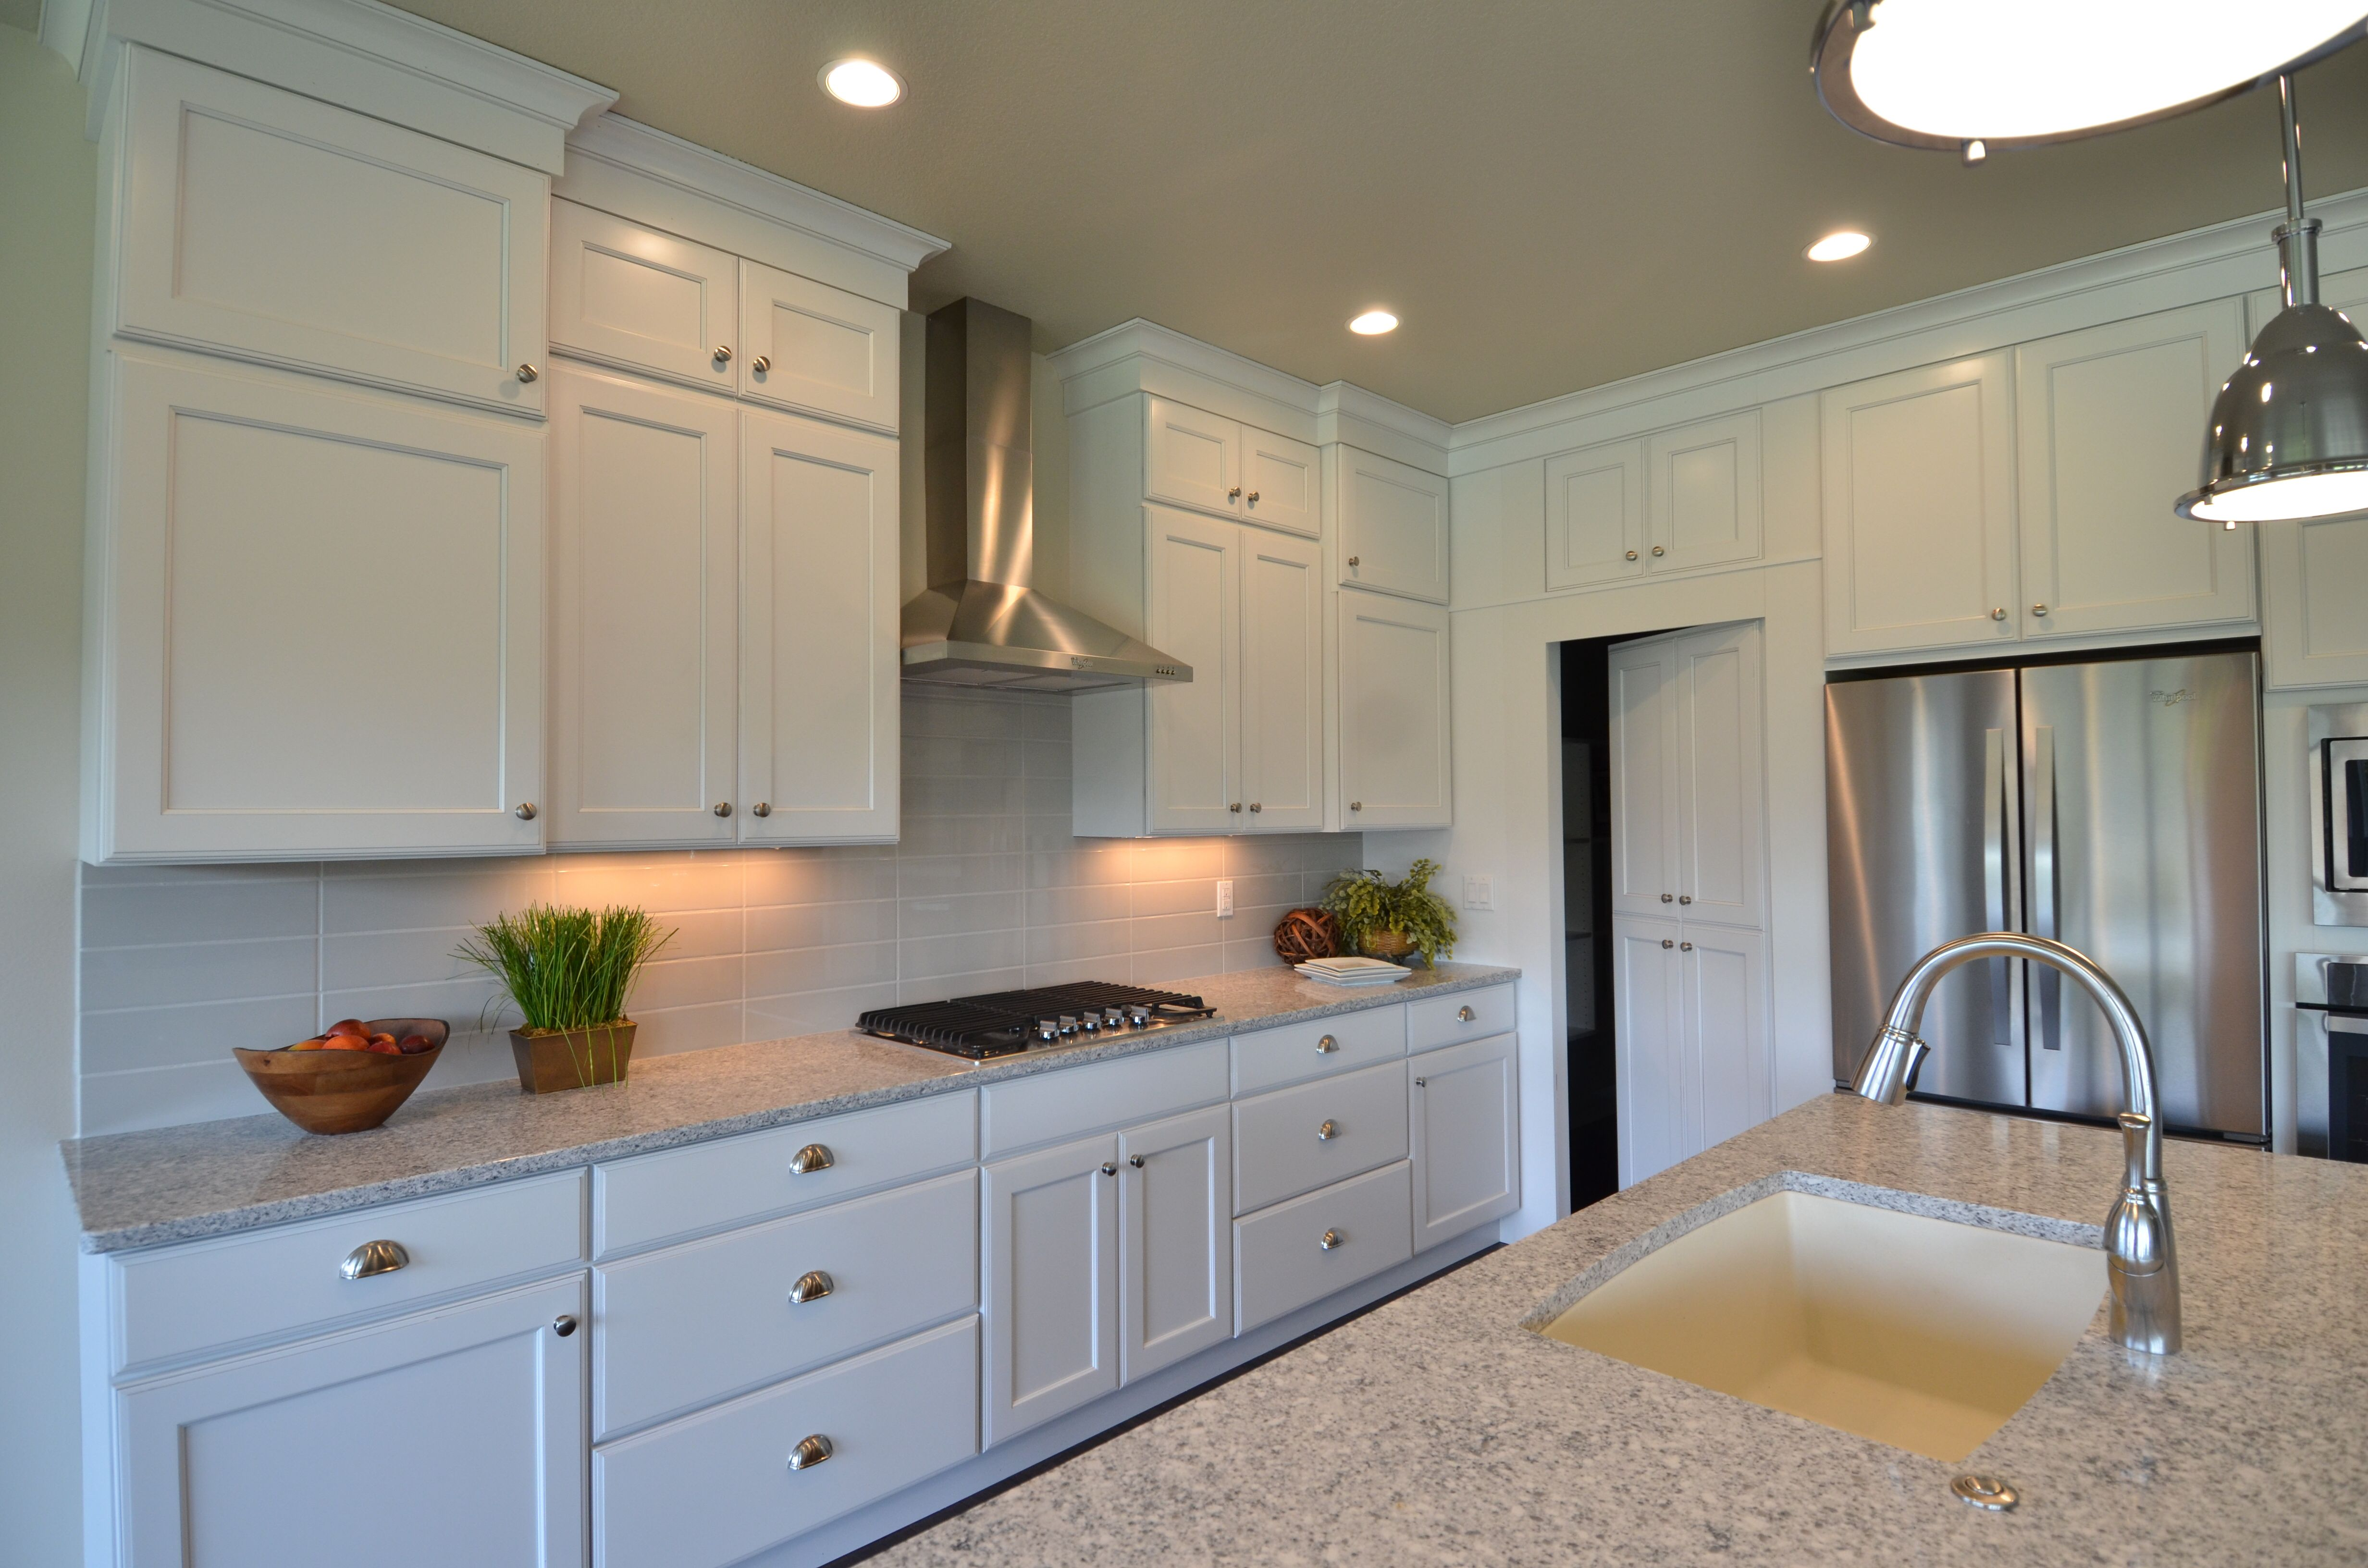 Add light to your home with white cabinets. The white ...